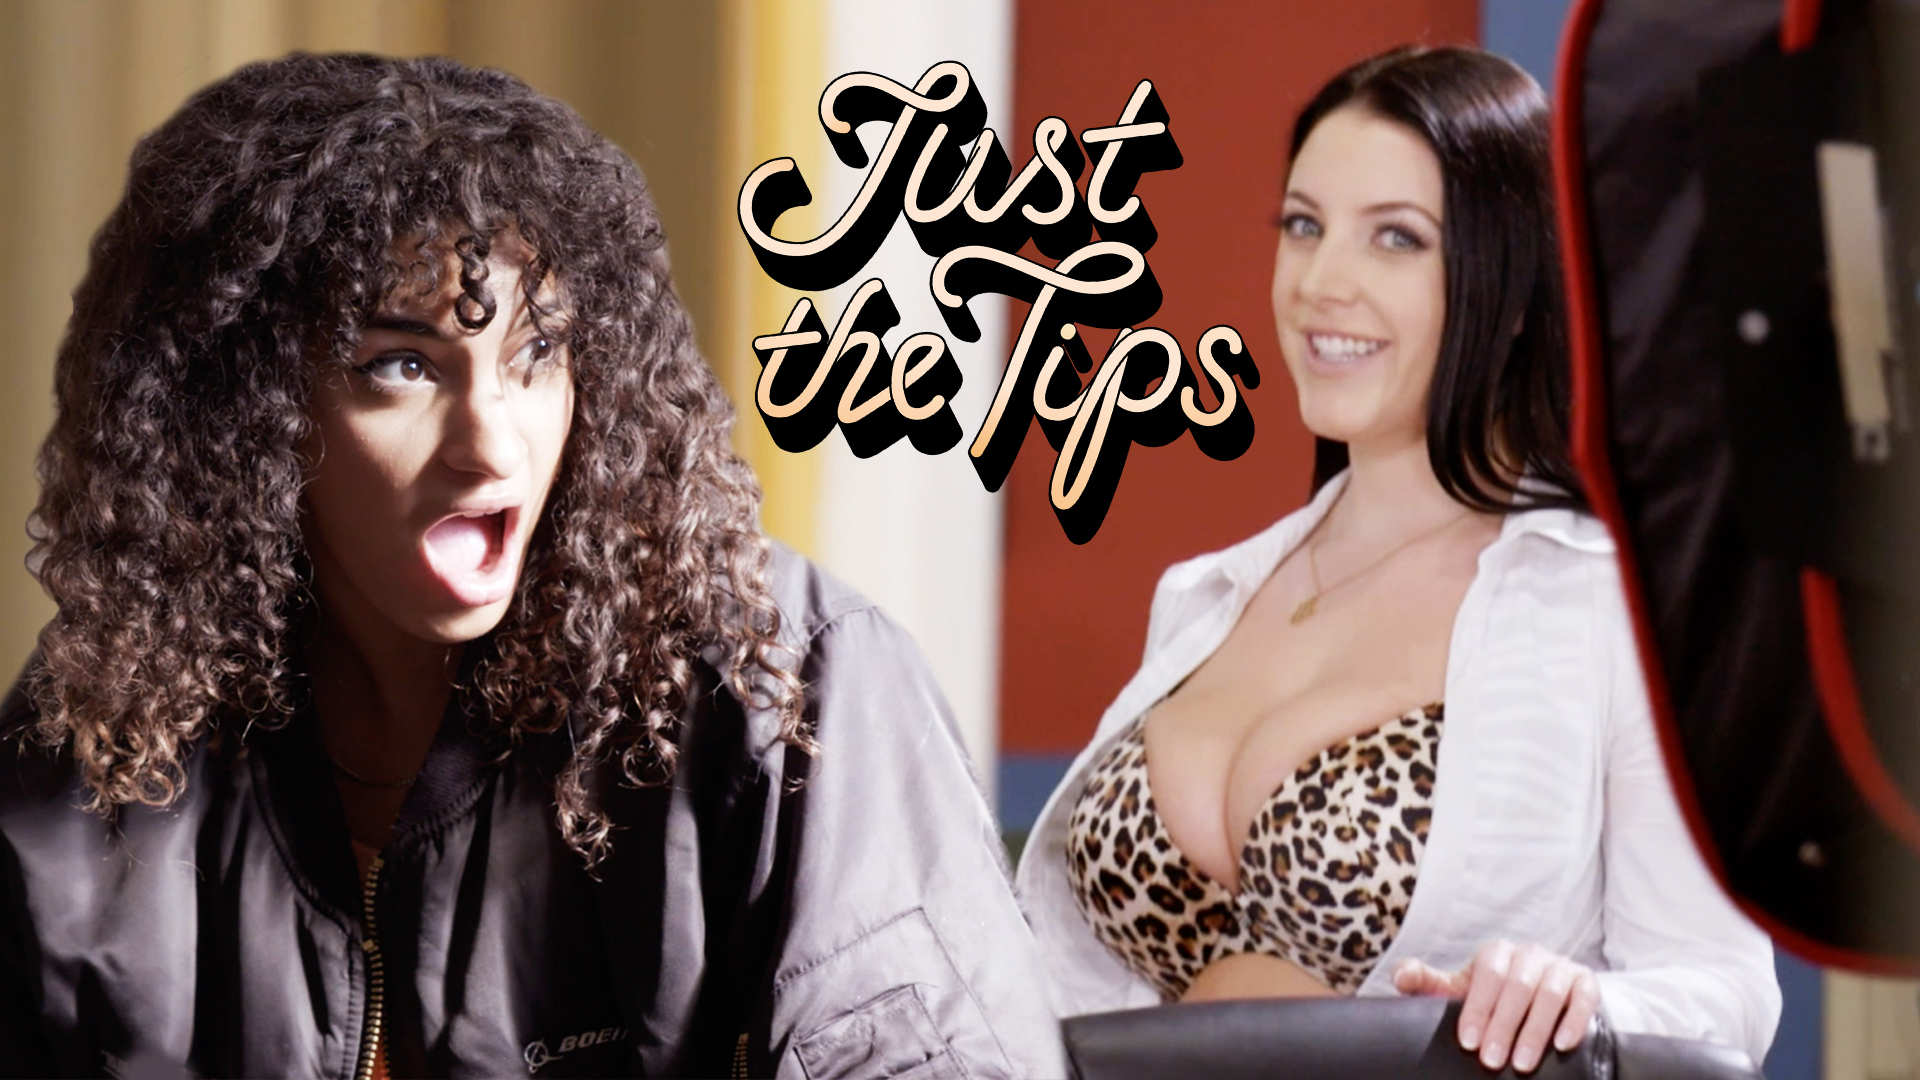 Angela Dodson Porn a porn star's guide to success